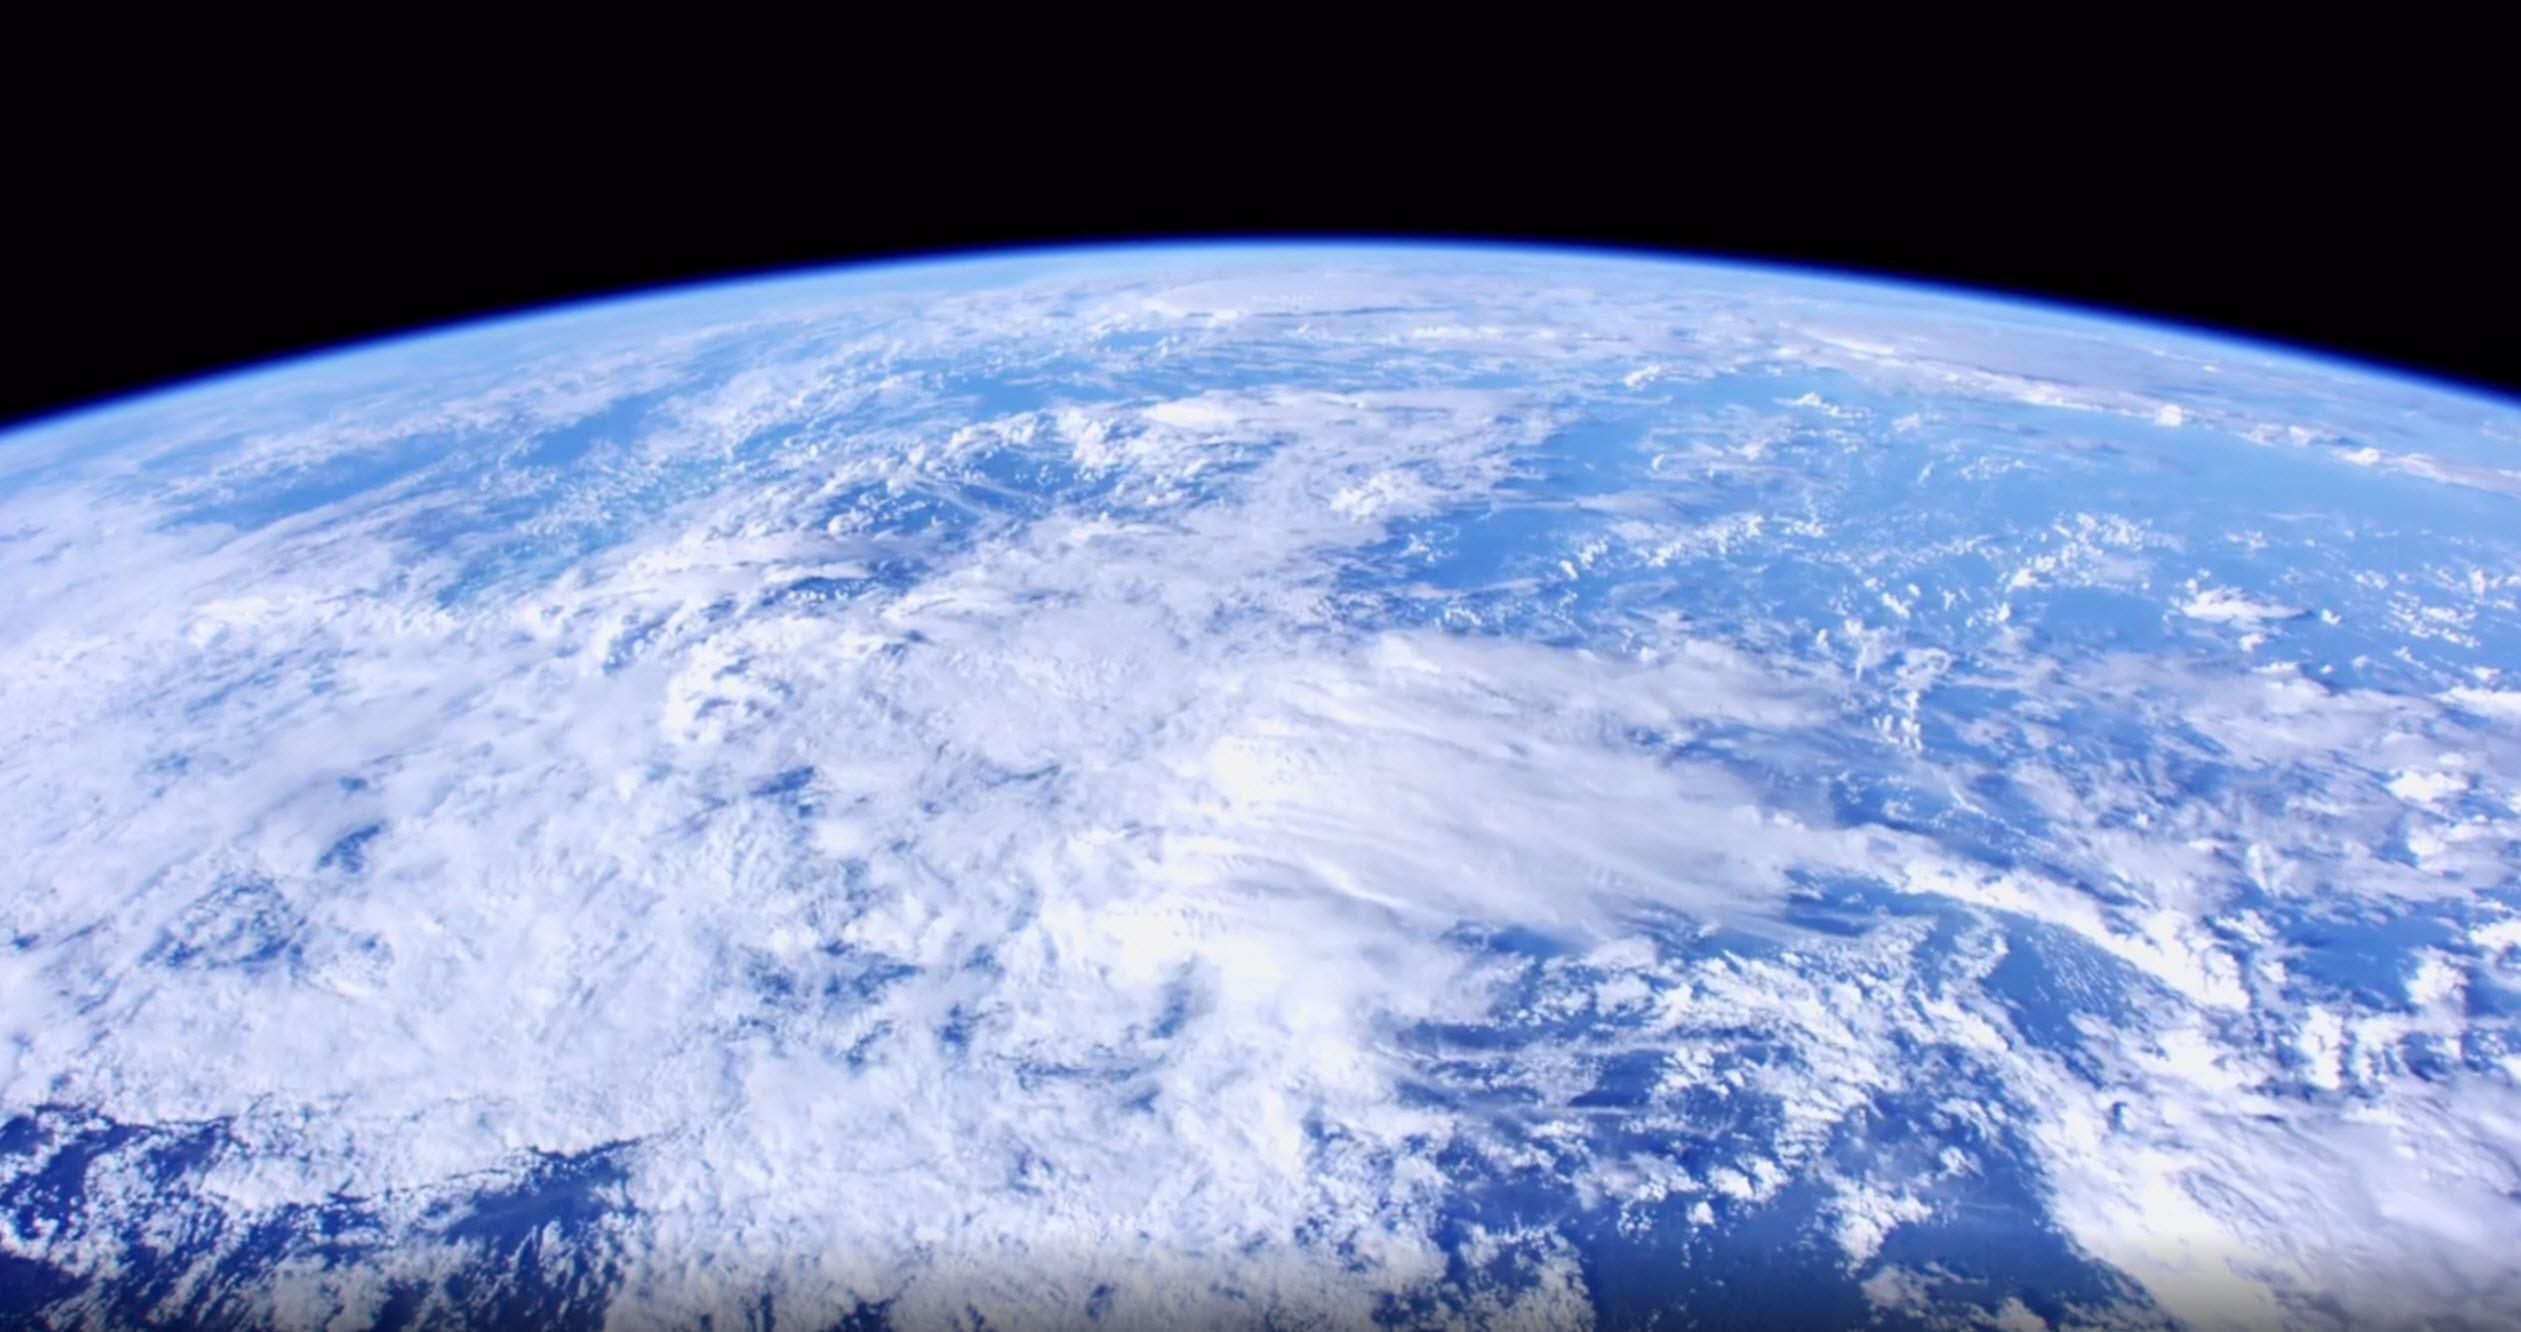 Earth From Space 4k Live Wallpaper For Android Apk Download